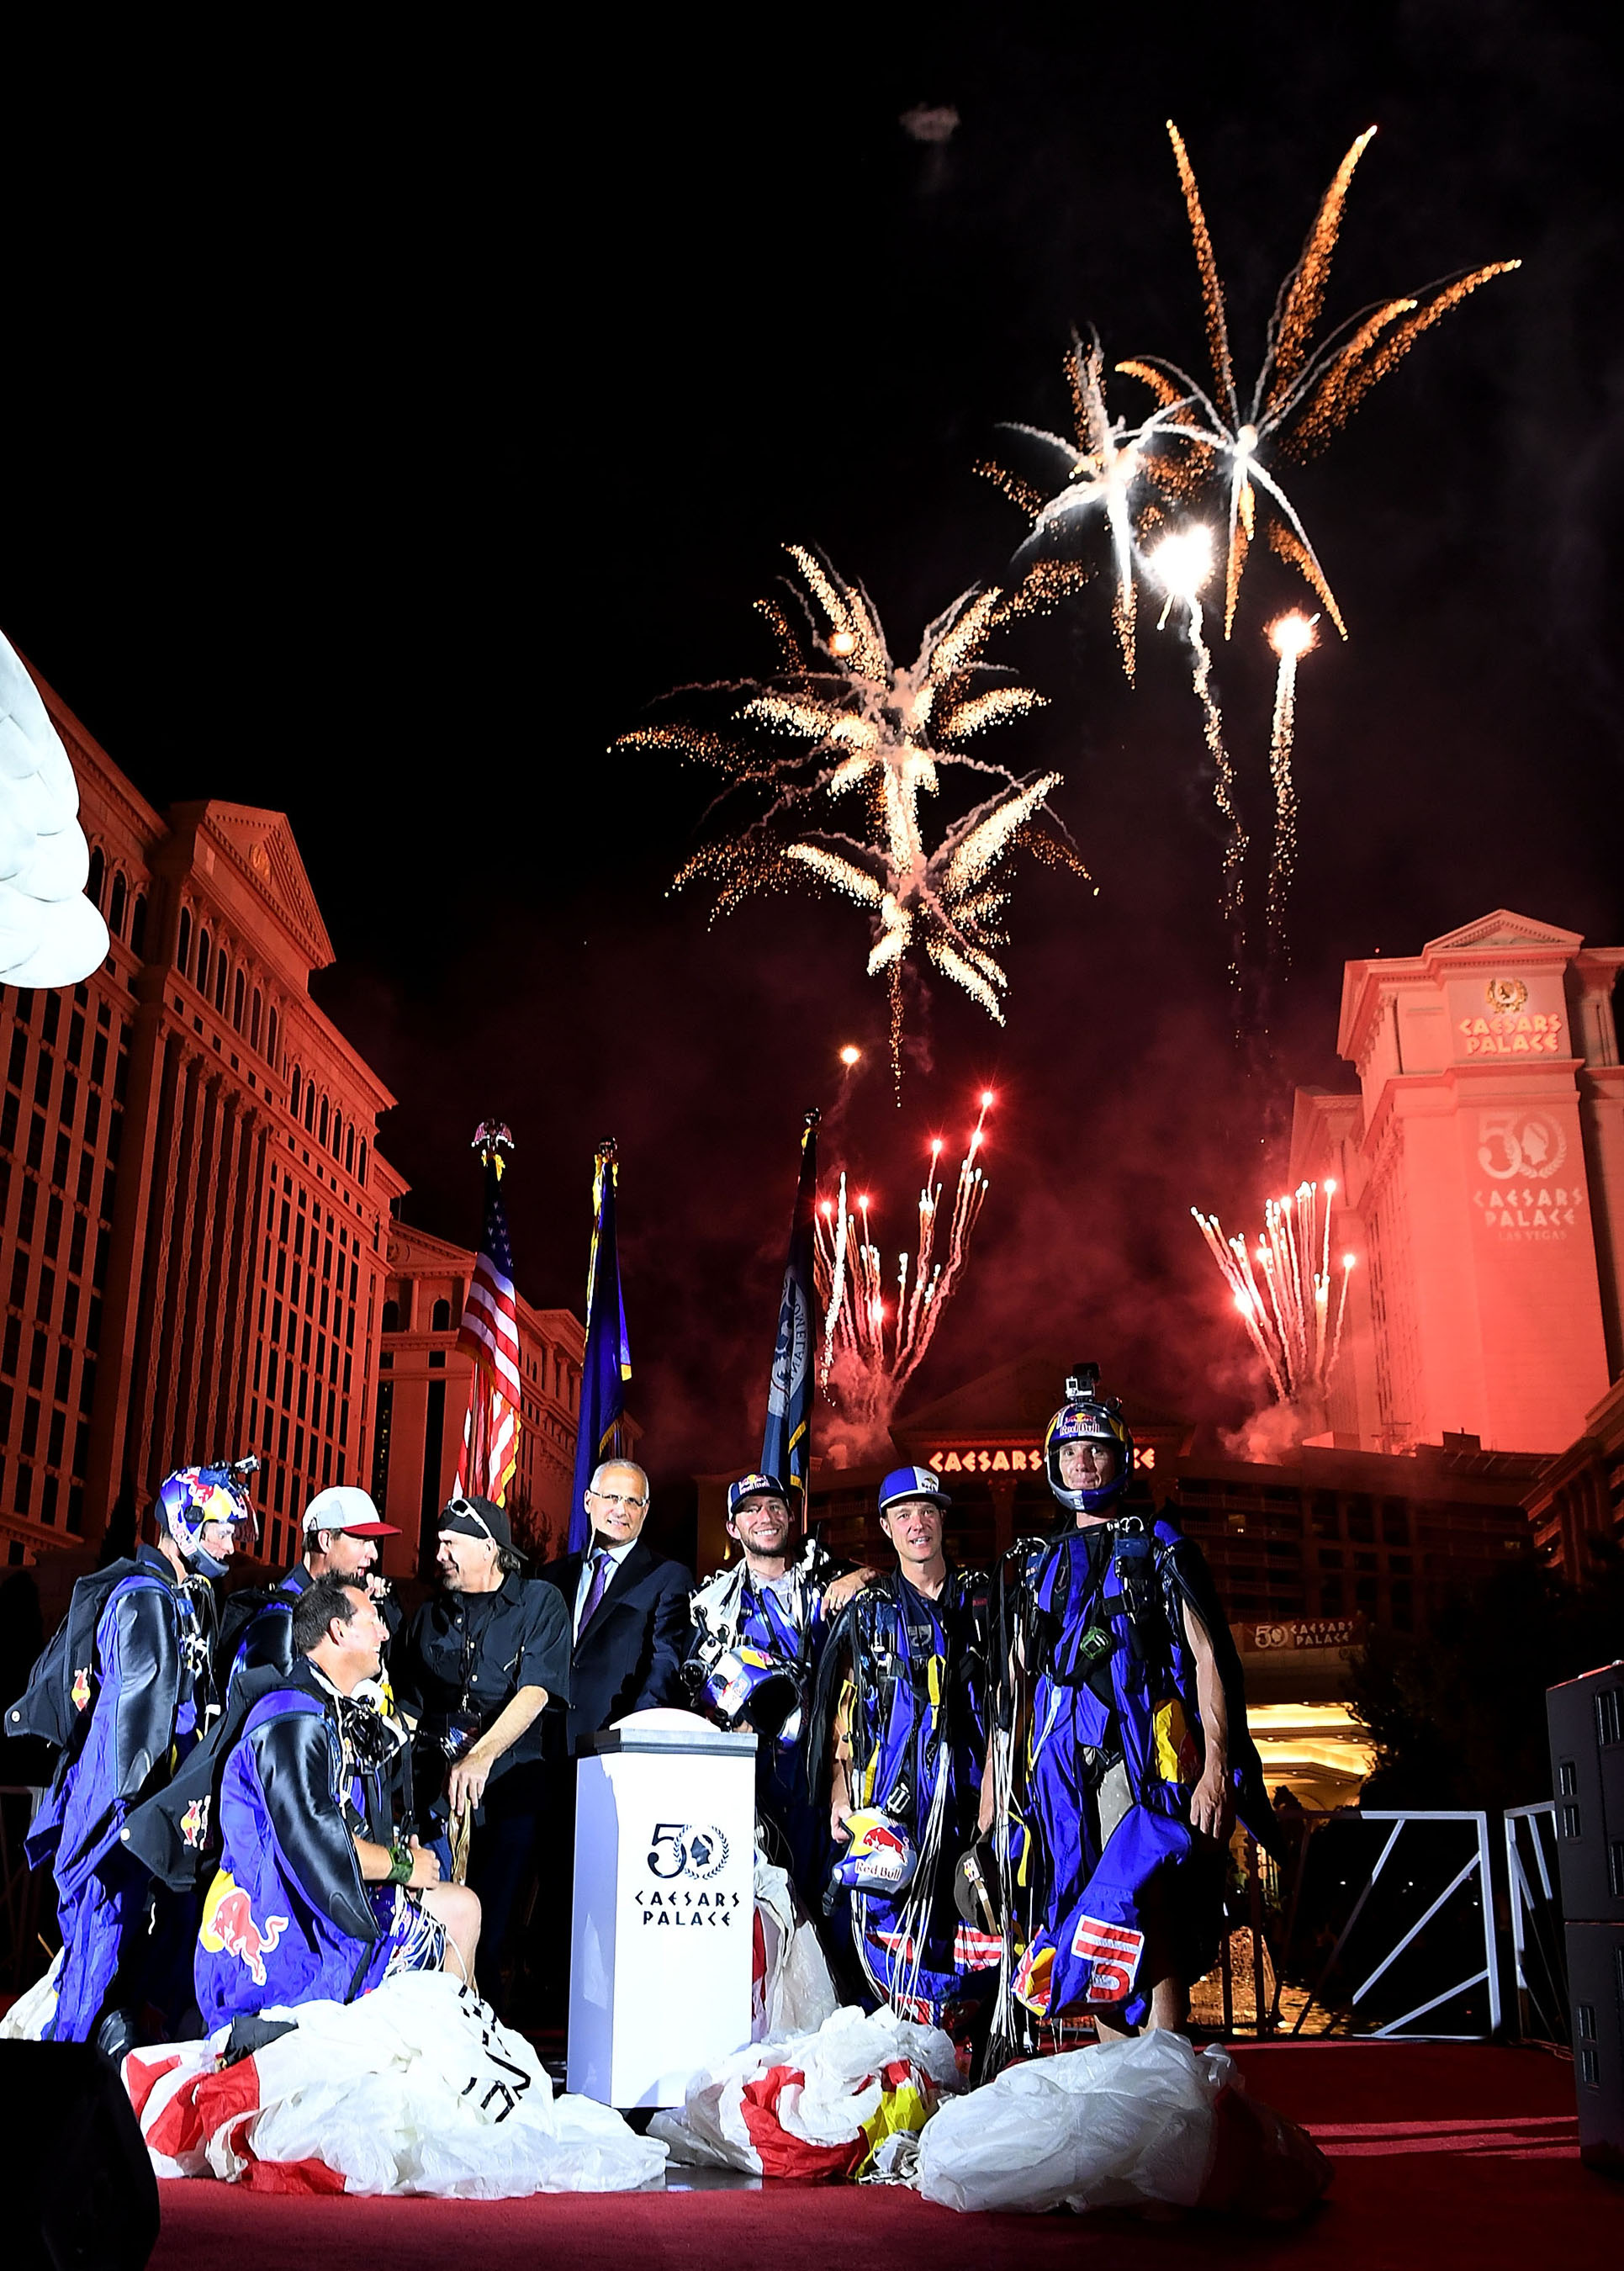 Caesars Palace executives join Robbie Knievel and Red Bull Air Force team to launch the fireworks extravaganza. Photo Credit: Denise Truscello/Getty Images